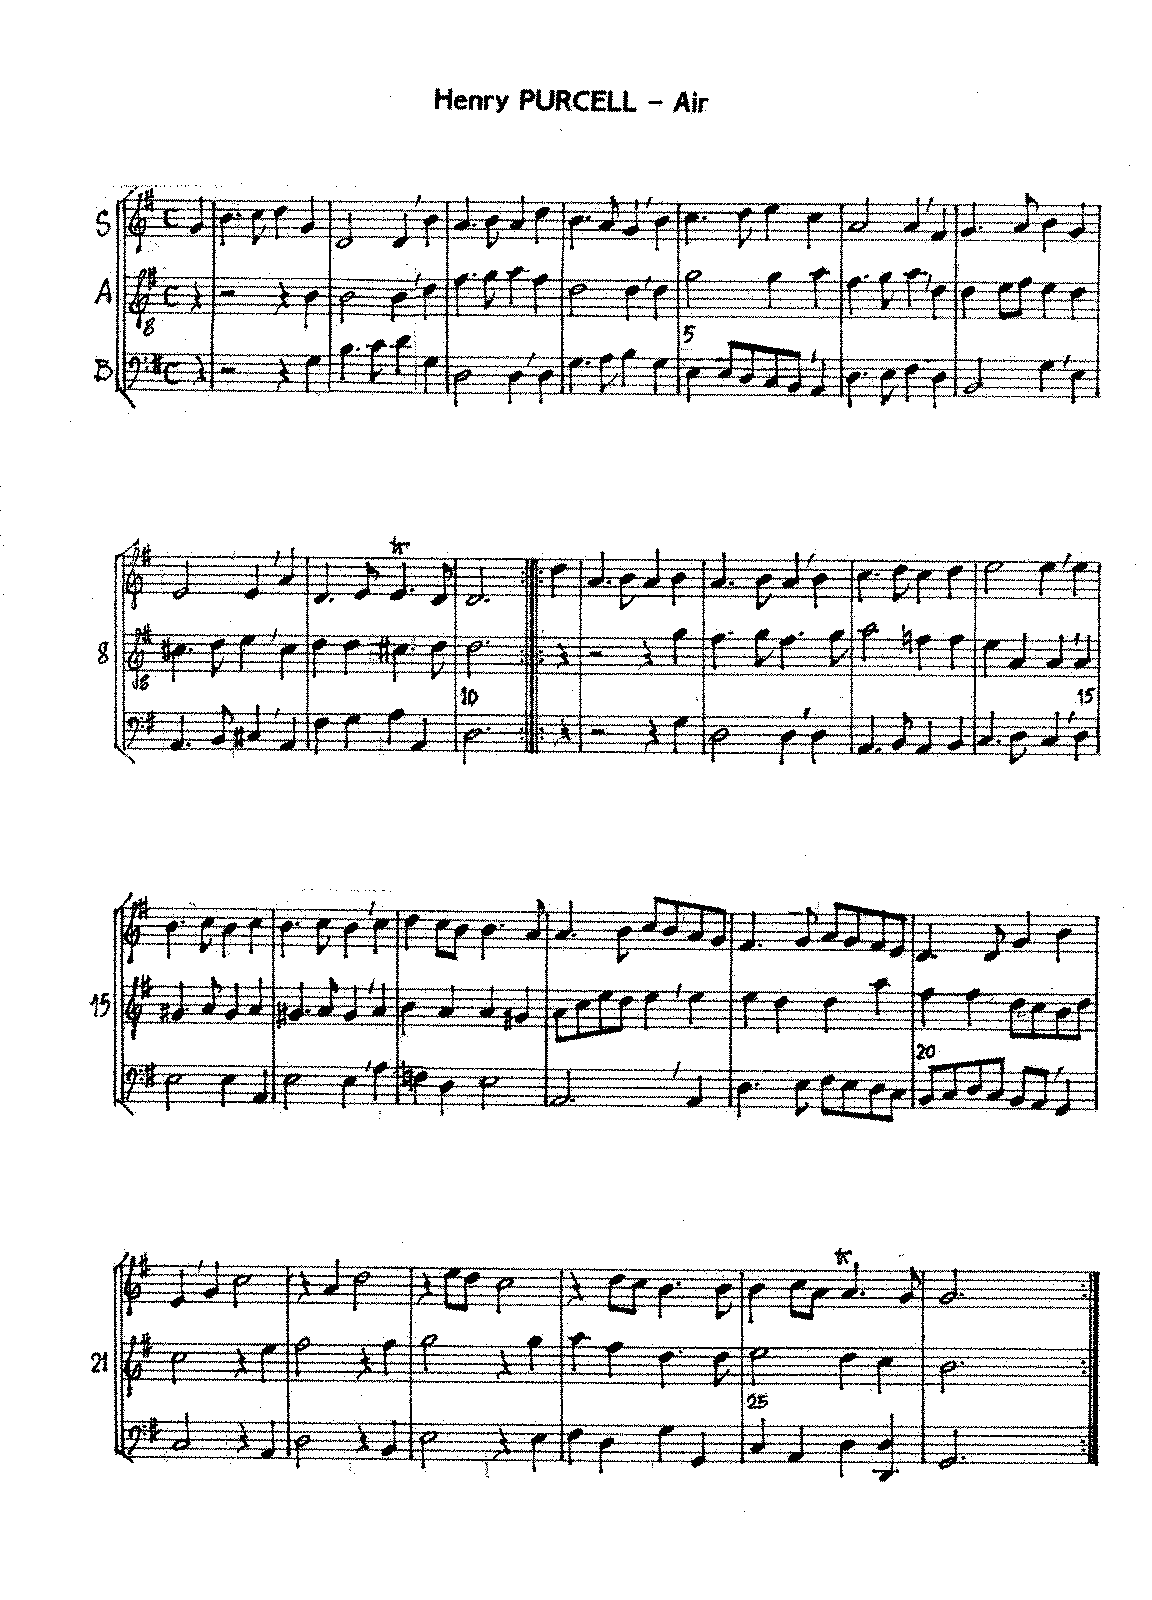 air in g major z 641 purcell henry imslp petrucci music